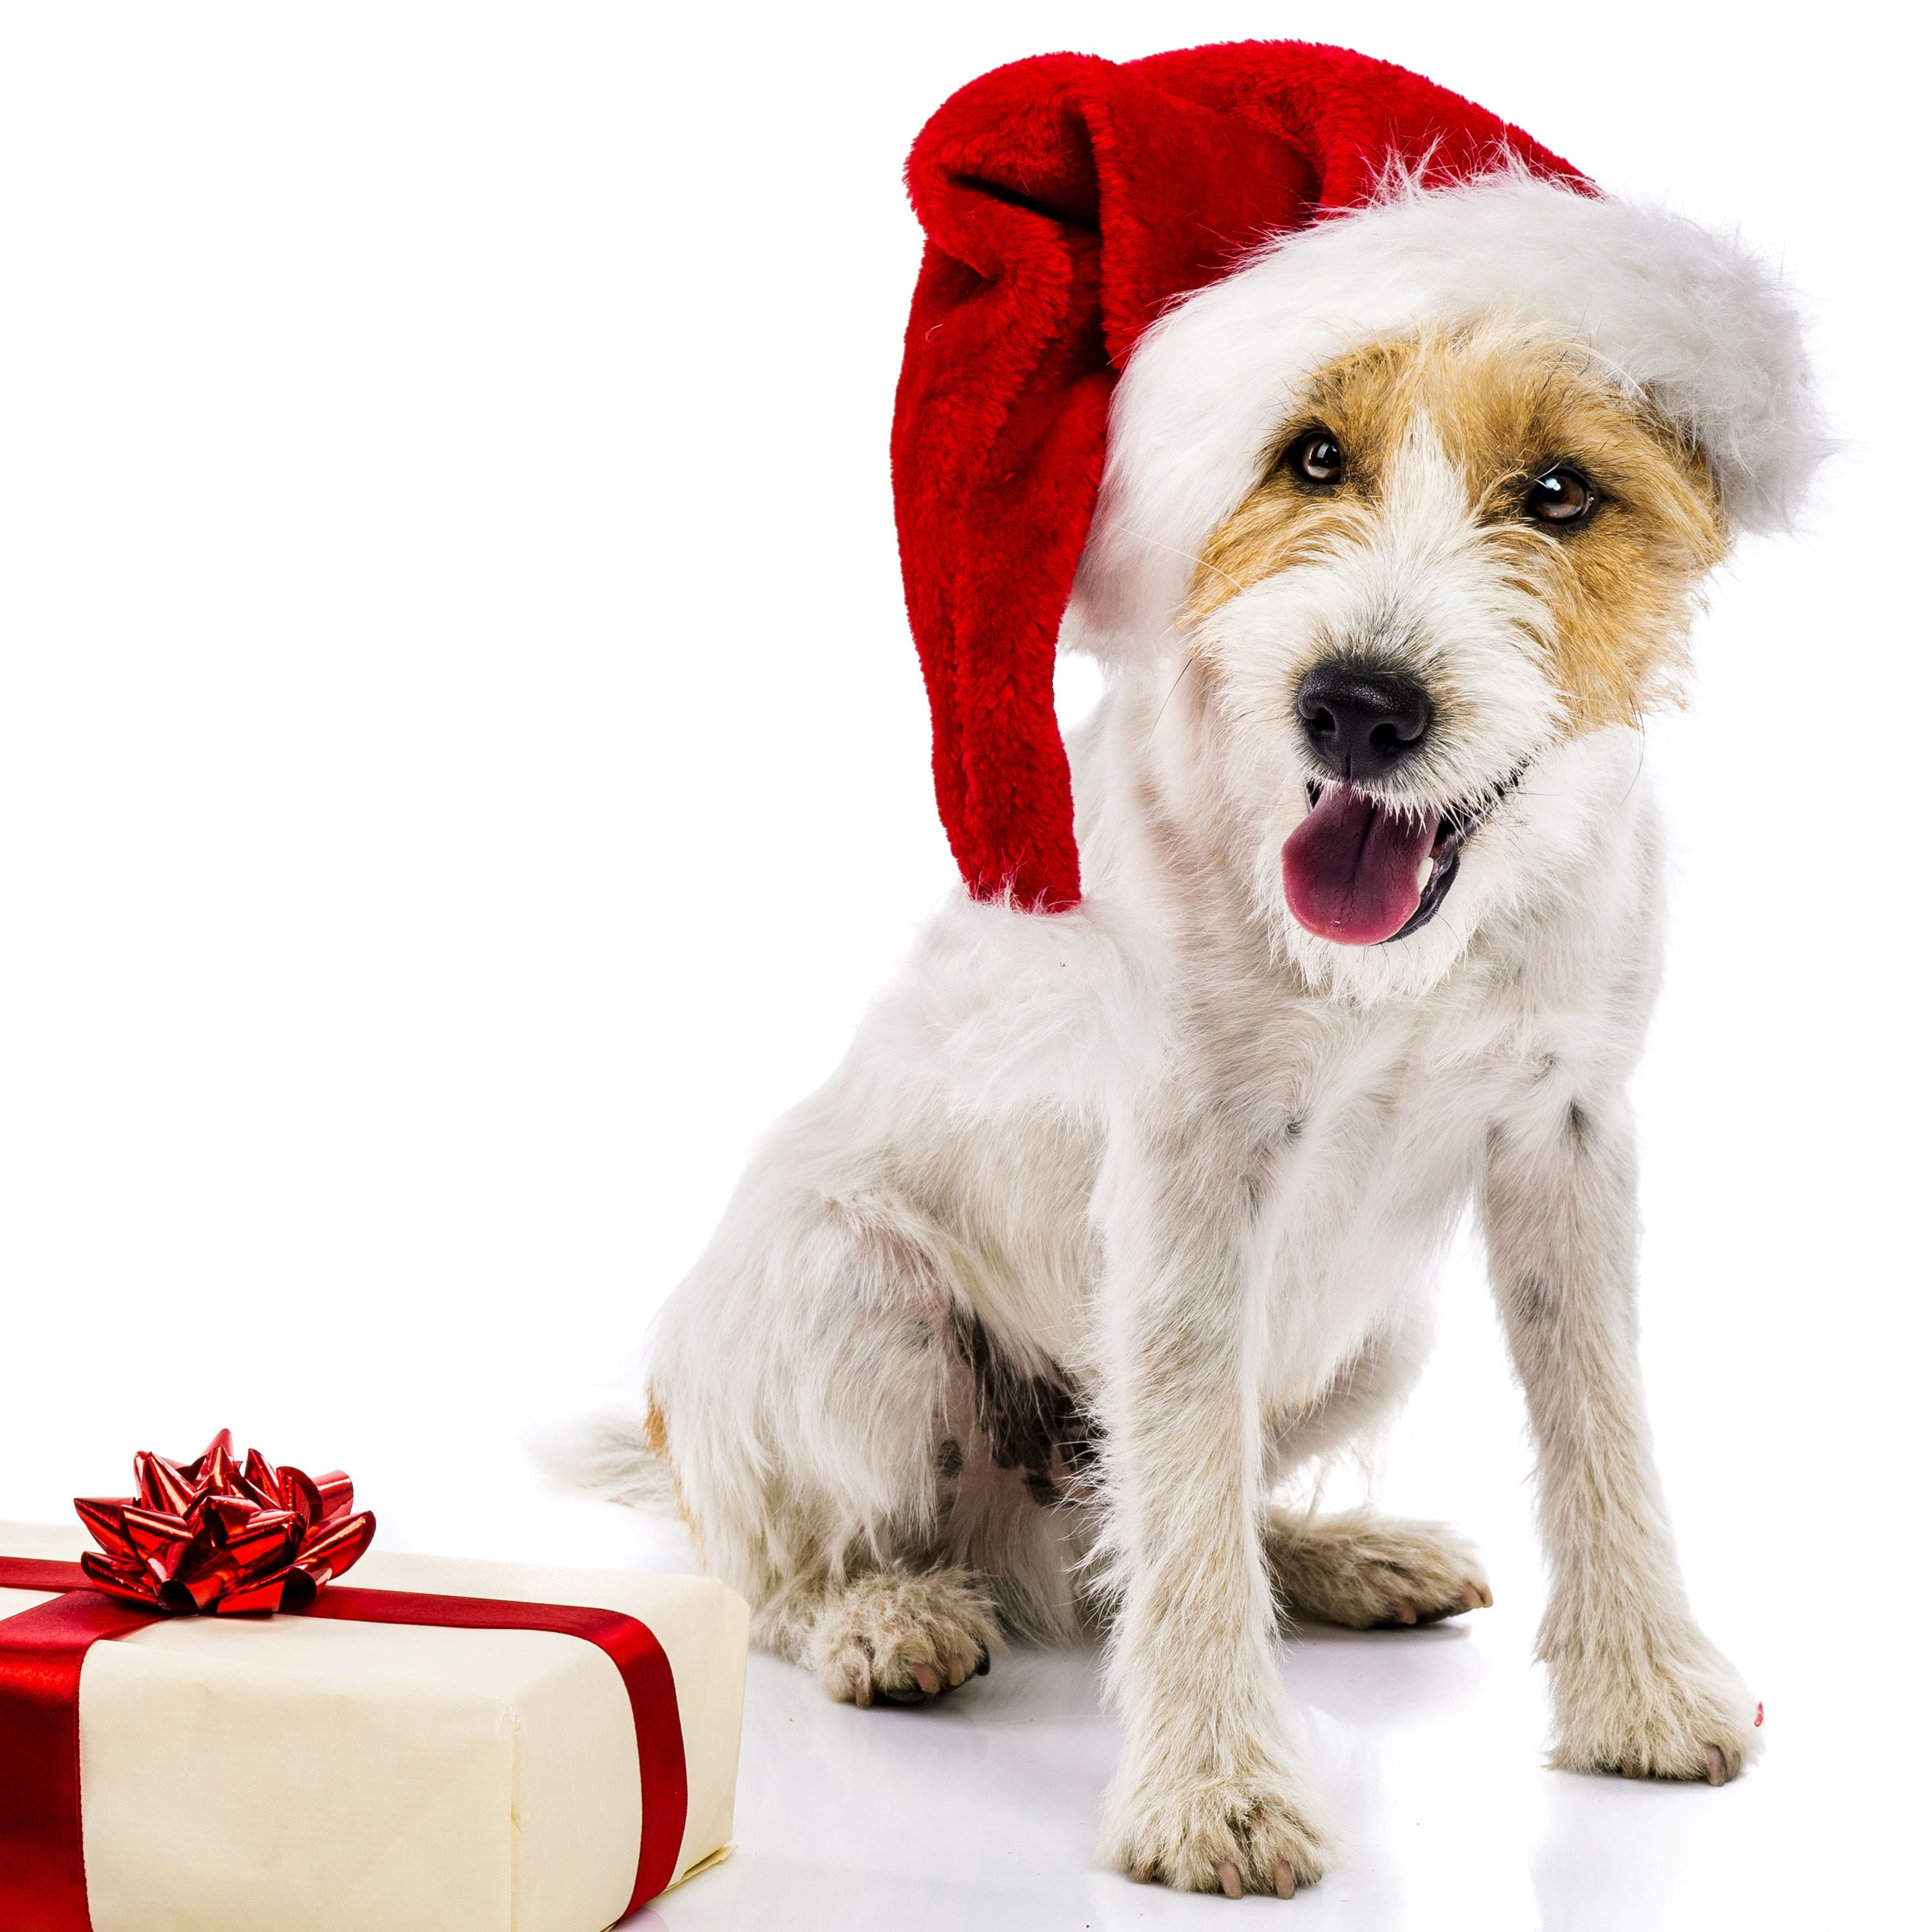 Terrier_ChristmasHat_present_sm